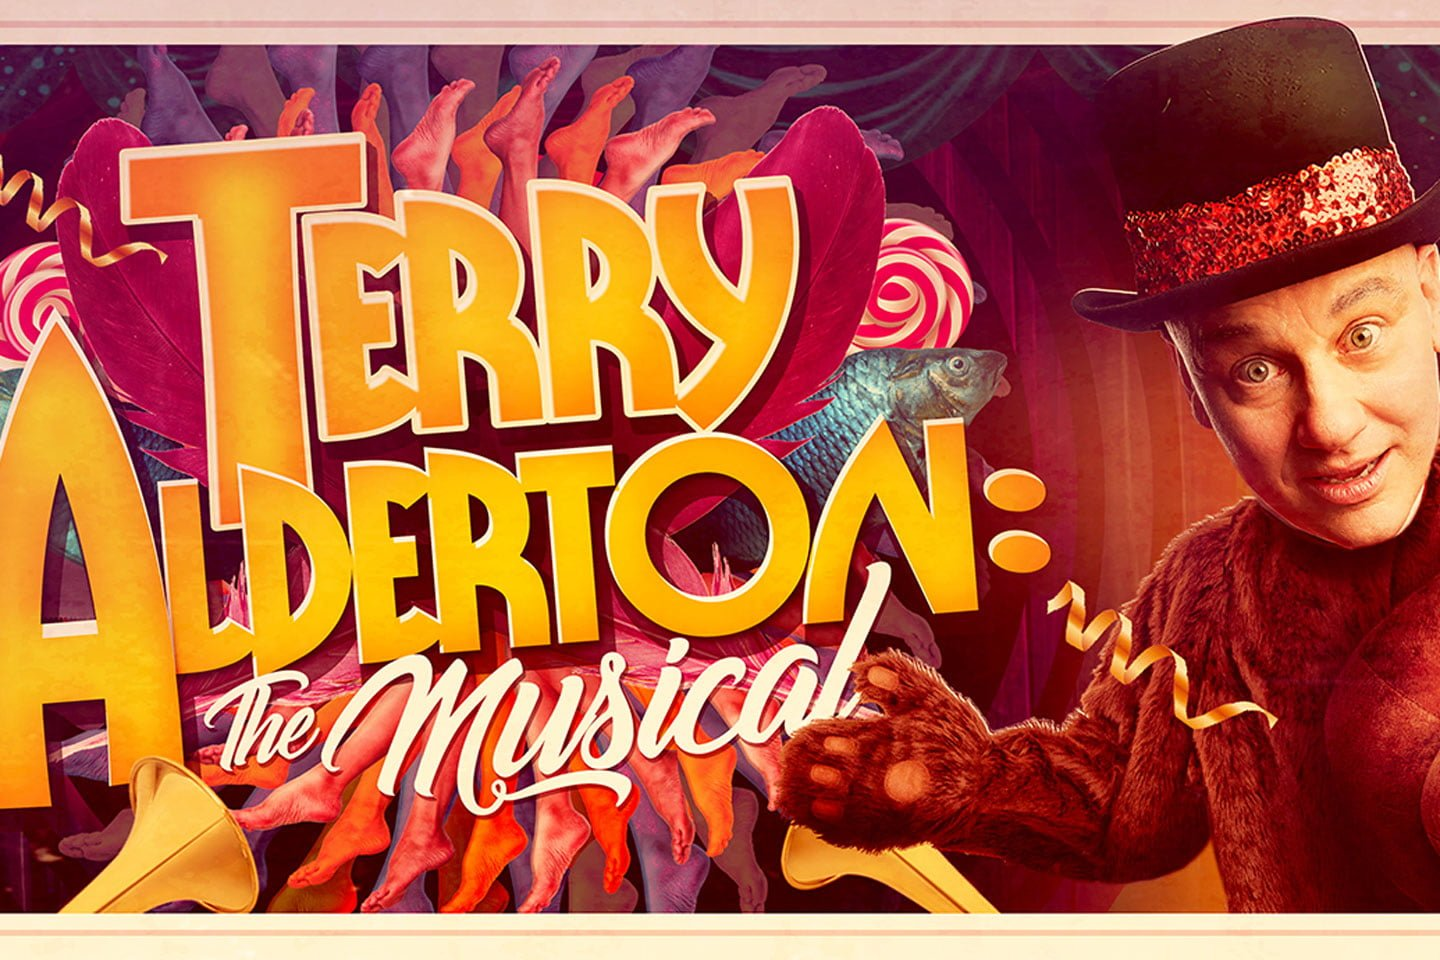 Terry-Alderton: The Musical